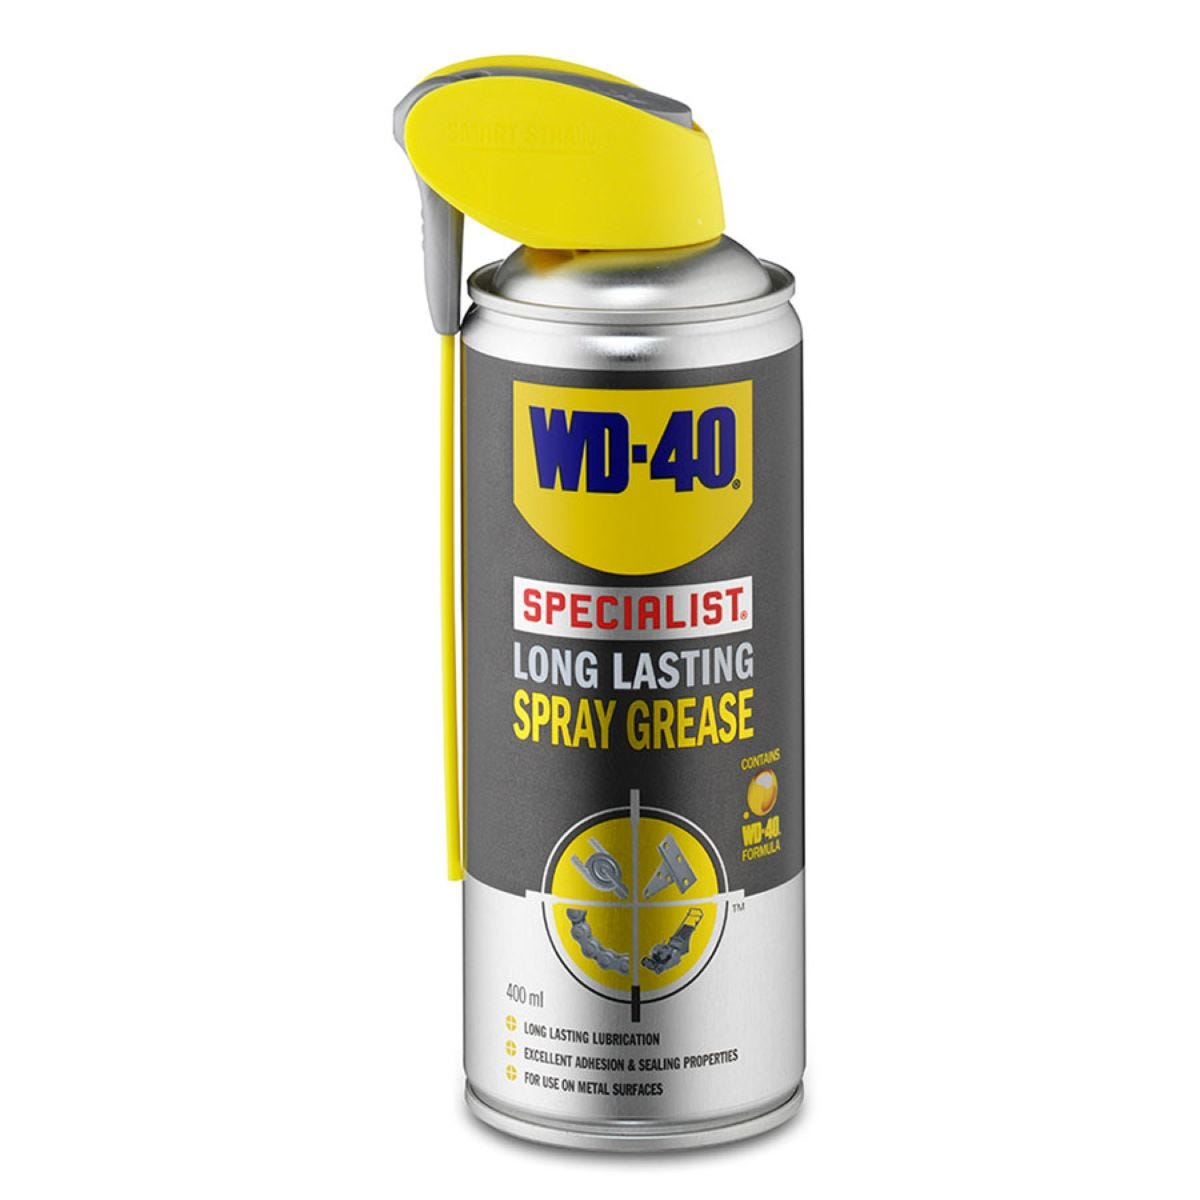 WD-40 Specialist Spray Grease – 400ml